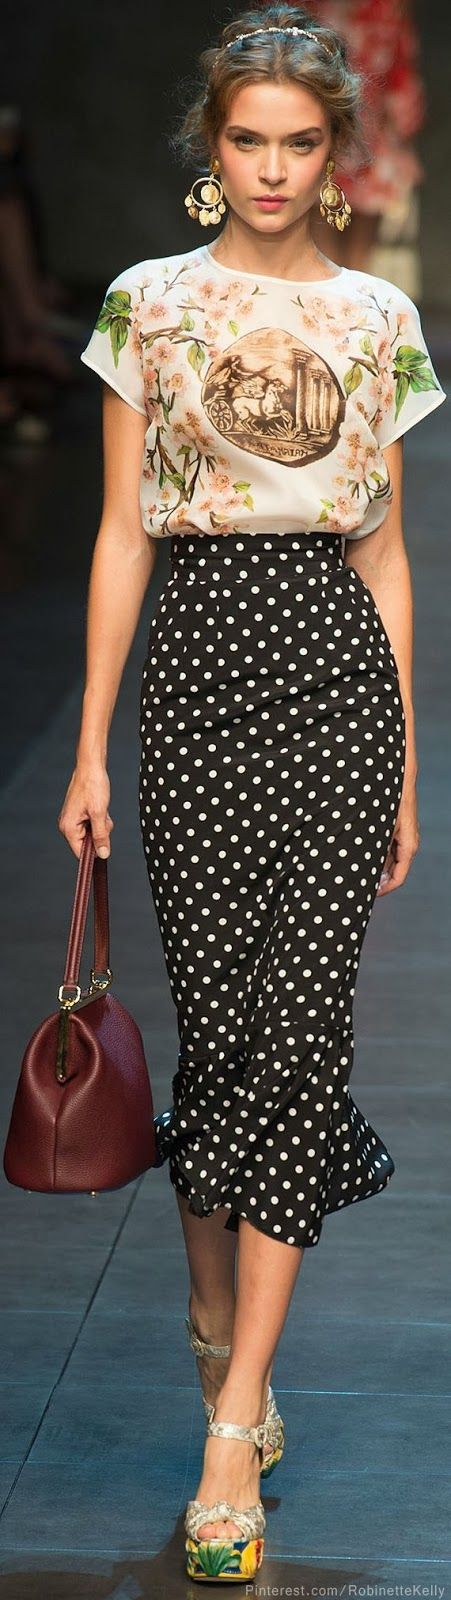 Rockin' the Polka!Black polka dot trumpet midi skirt,  white oriental pattern top, white pattern heels